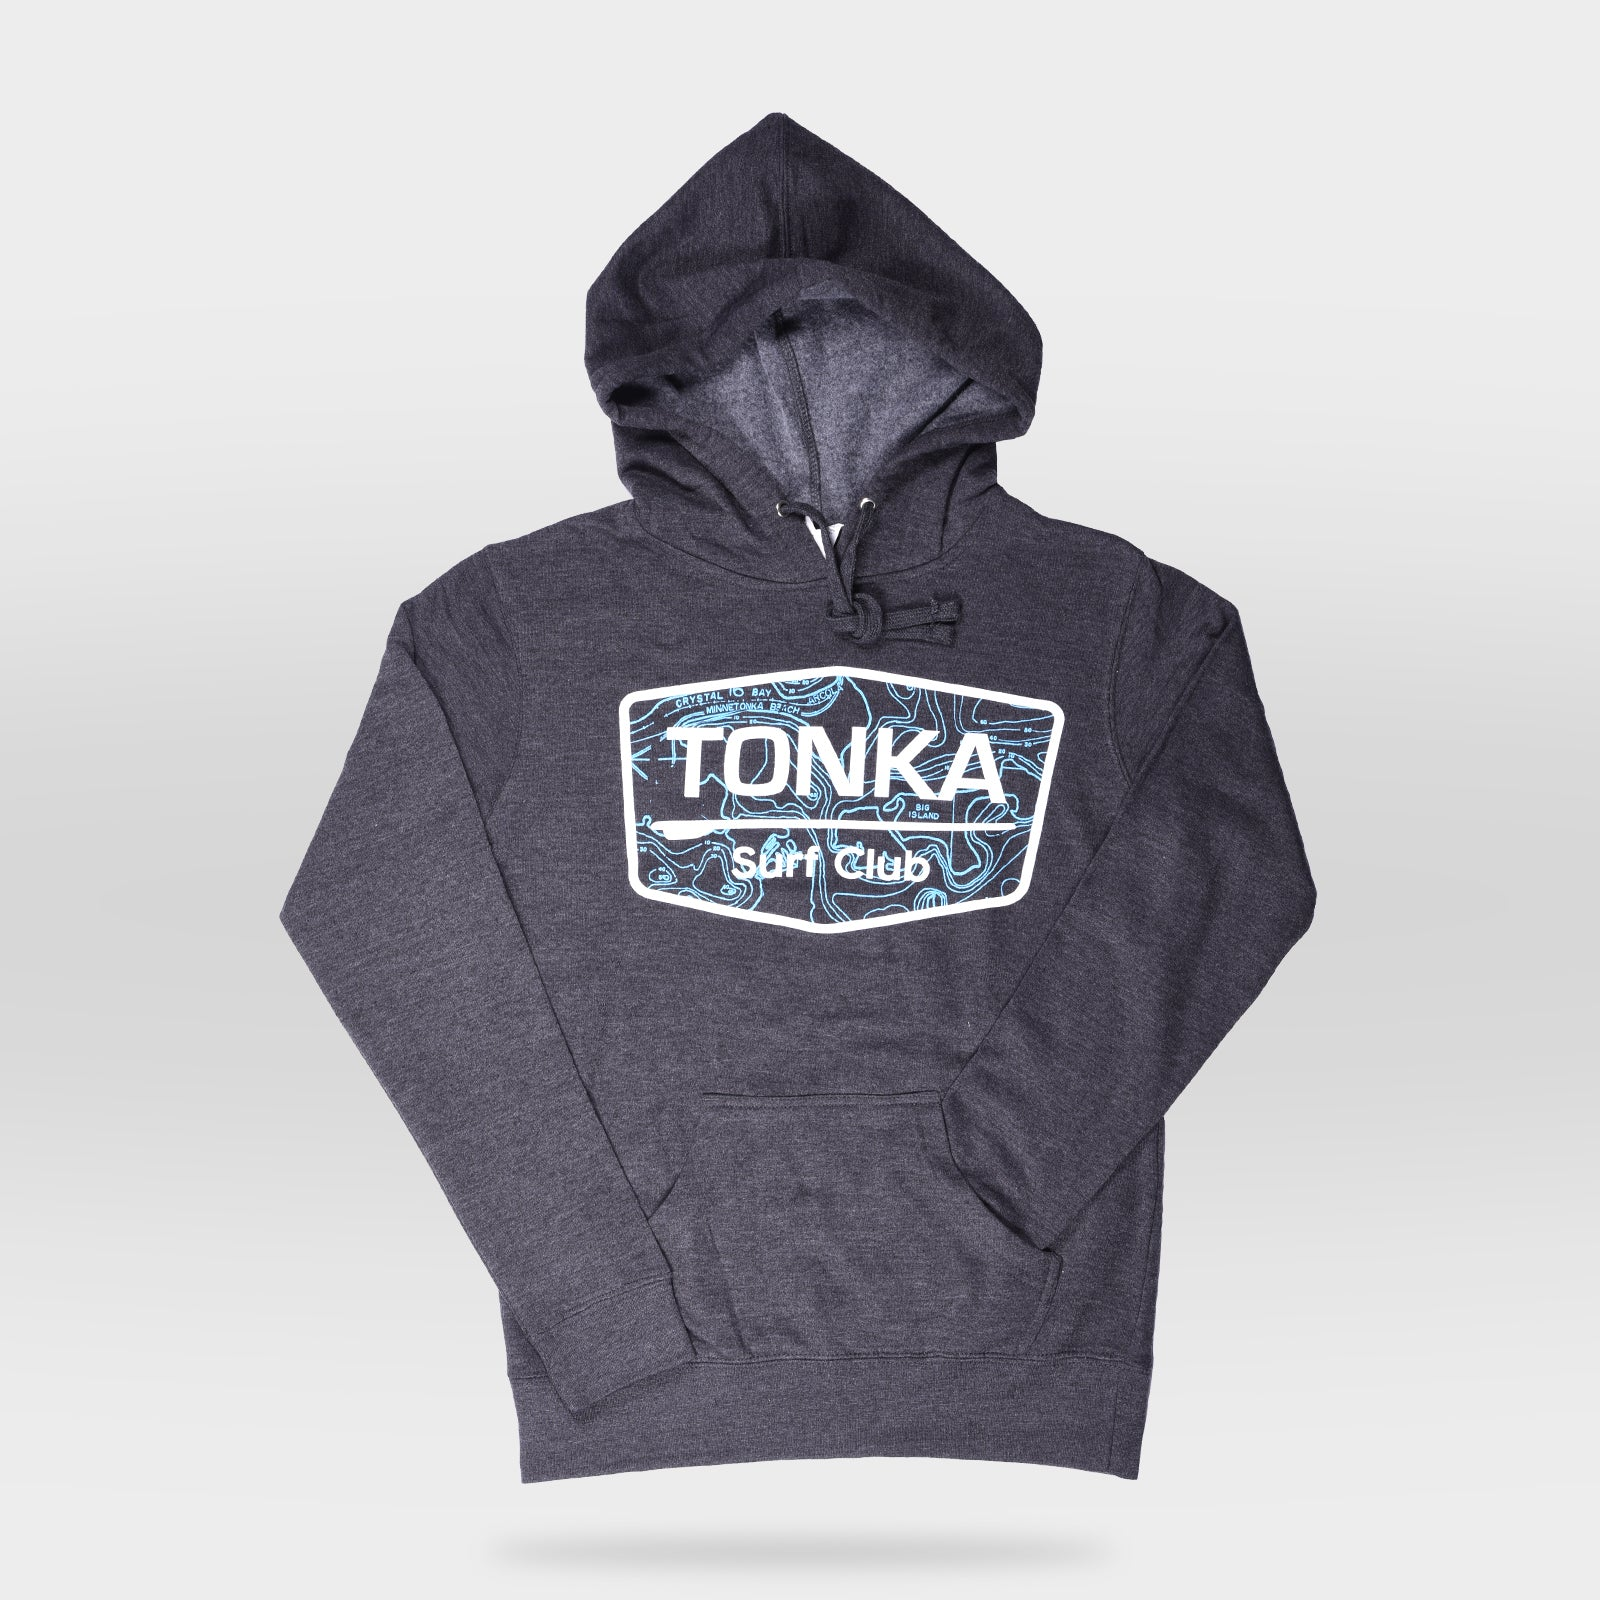 Charcoal Women's TONKA Surf Club Hoodie Sweatshirt